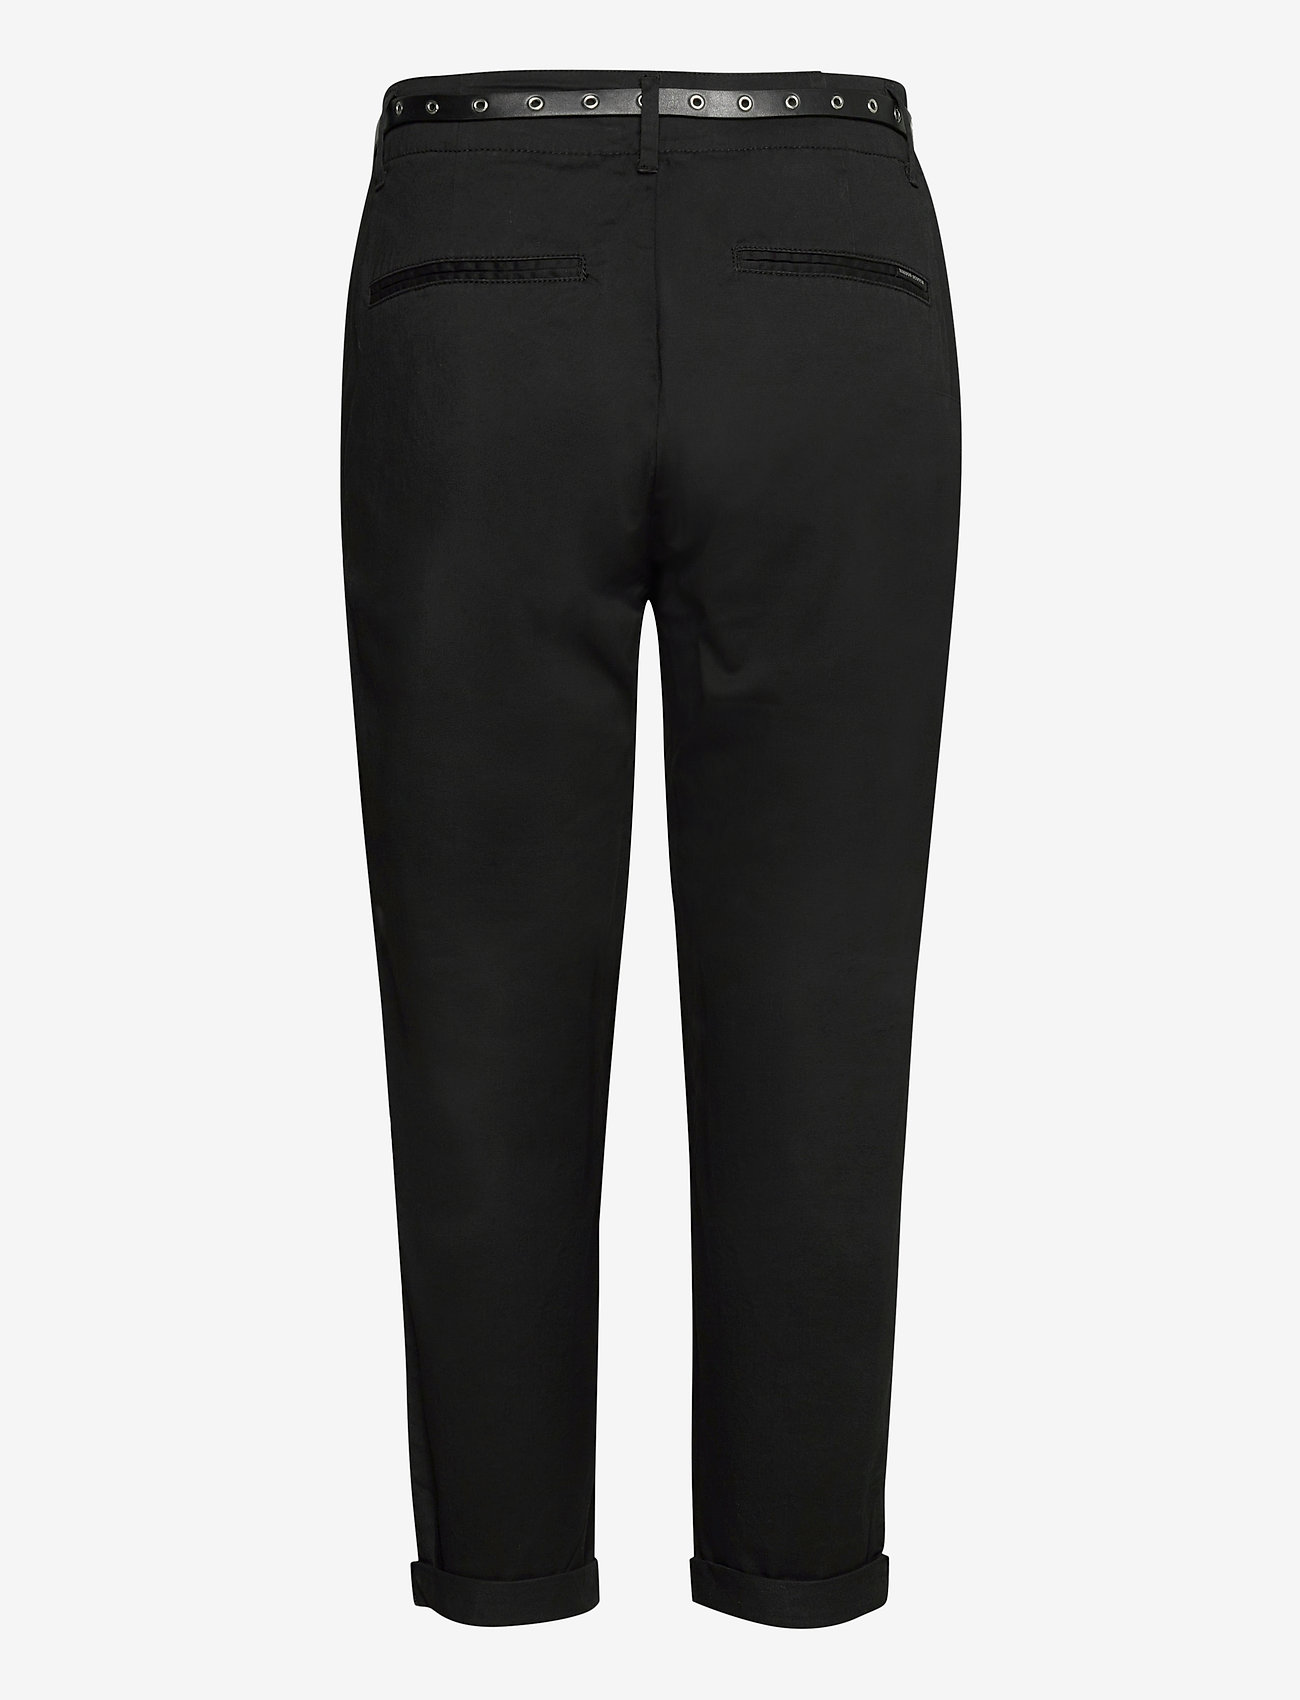 Scotch & Soda - Regular fit chino, sold with a belt - chinos - black - 1